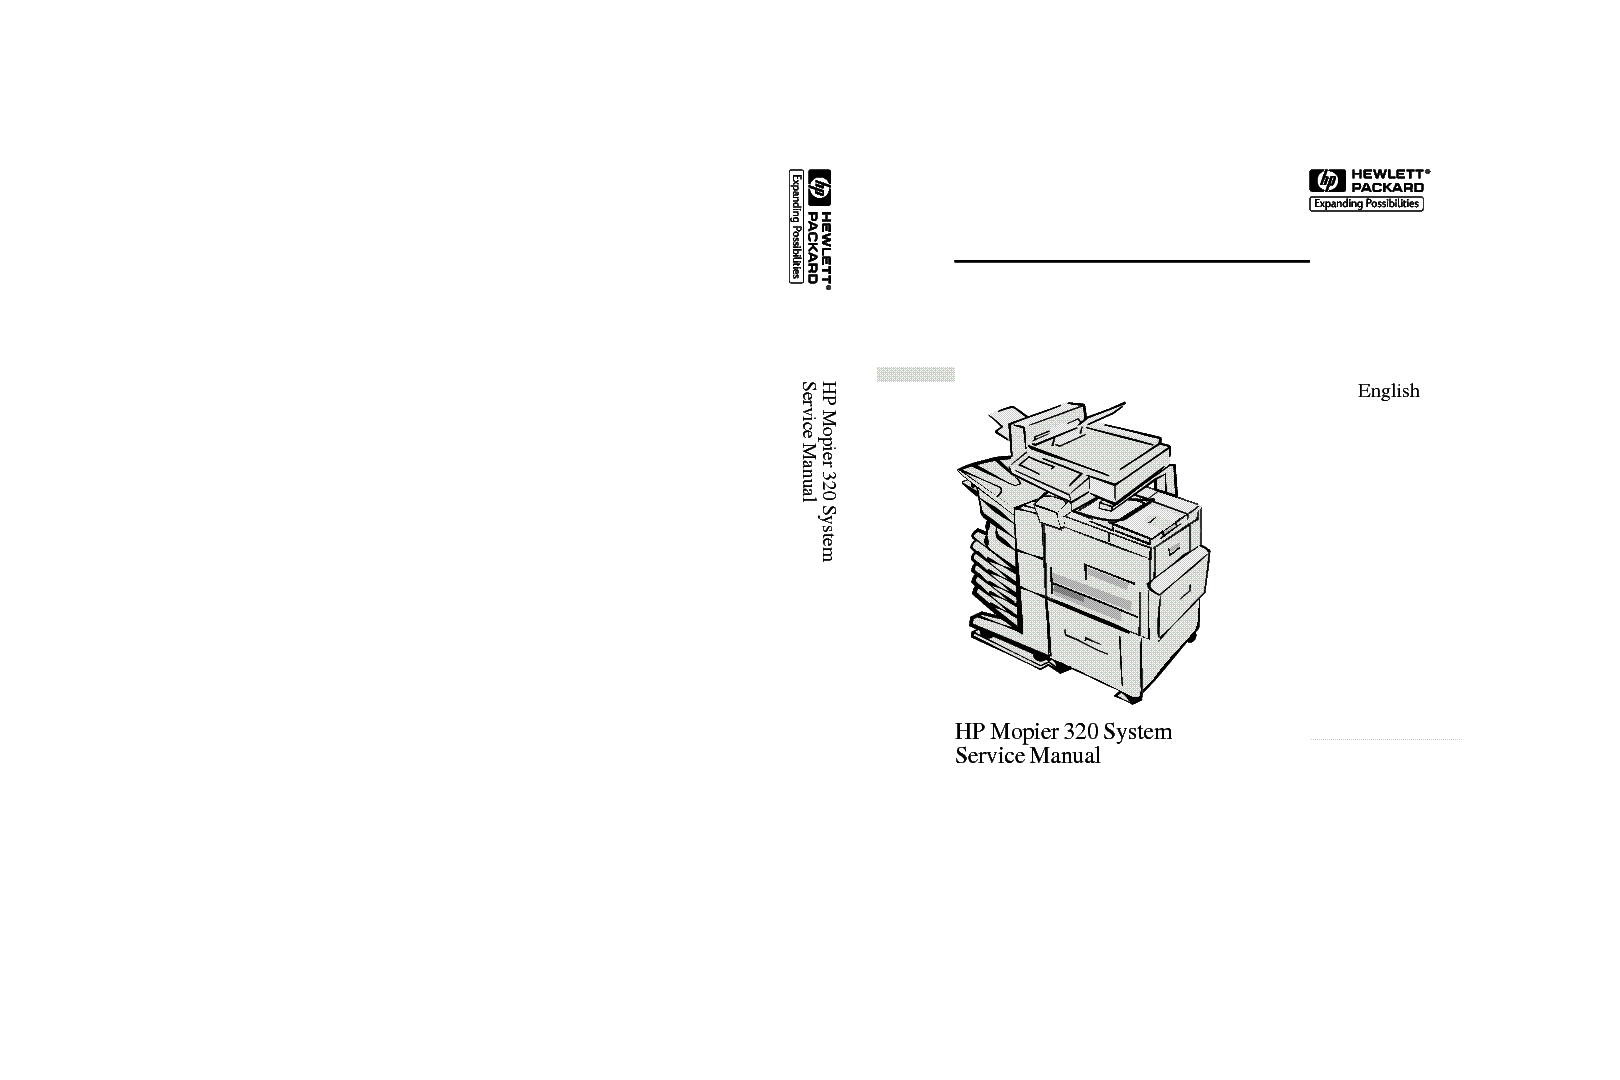 HP MOPIER 320 SYSTEM Service Manual download, schematics